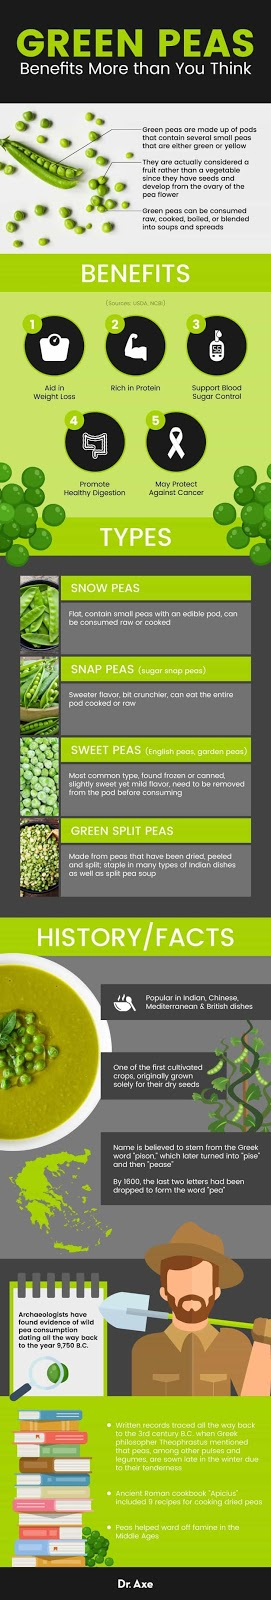 Green Peas, health, health articles, helth news, green peas good for dogs, green peas nutrition, green peas nutrition facts, greenpeace, green peas,